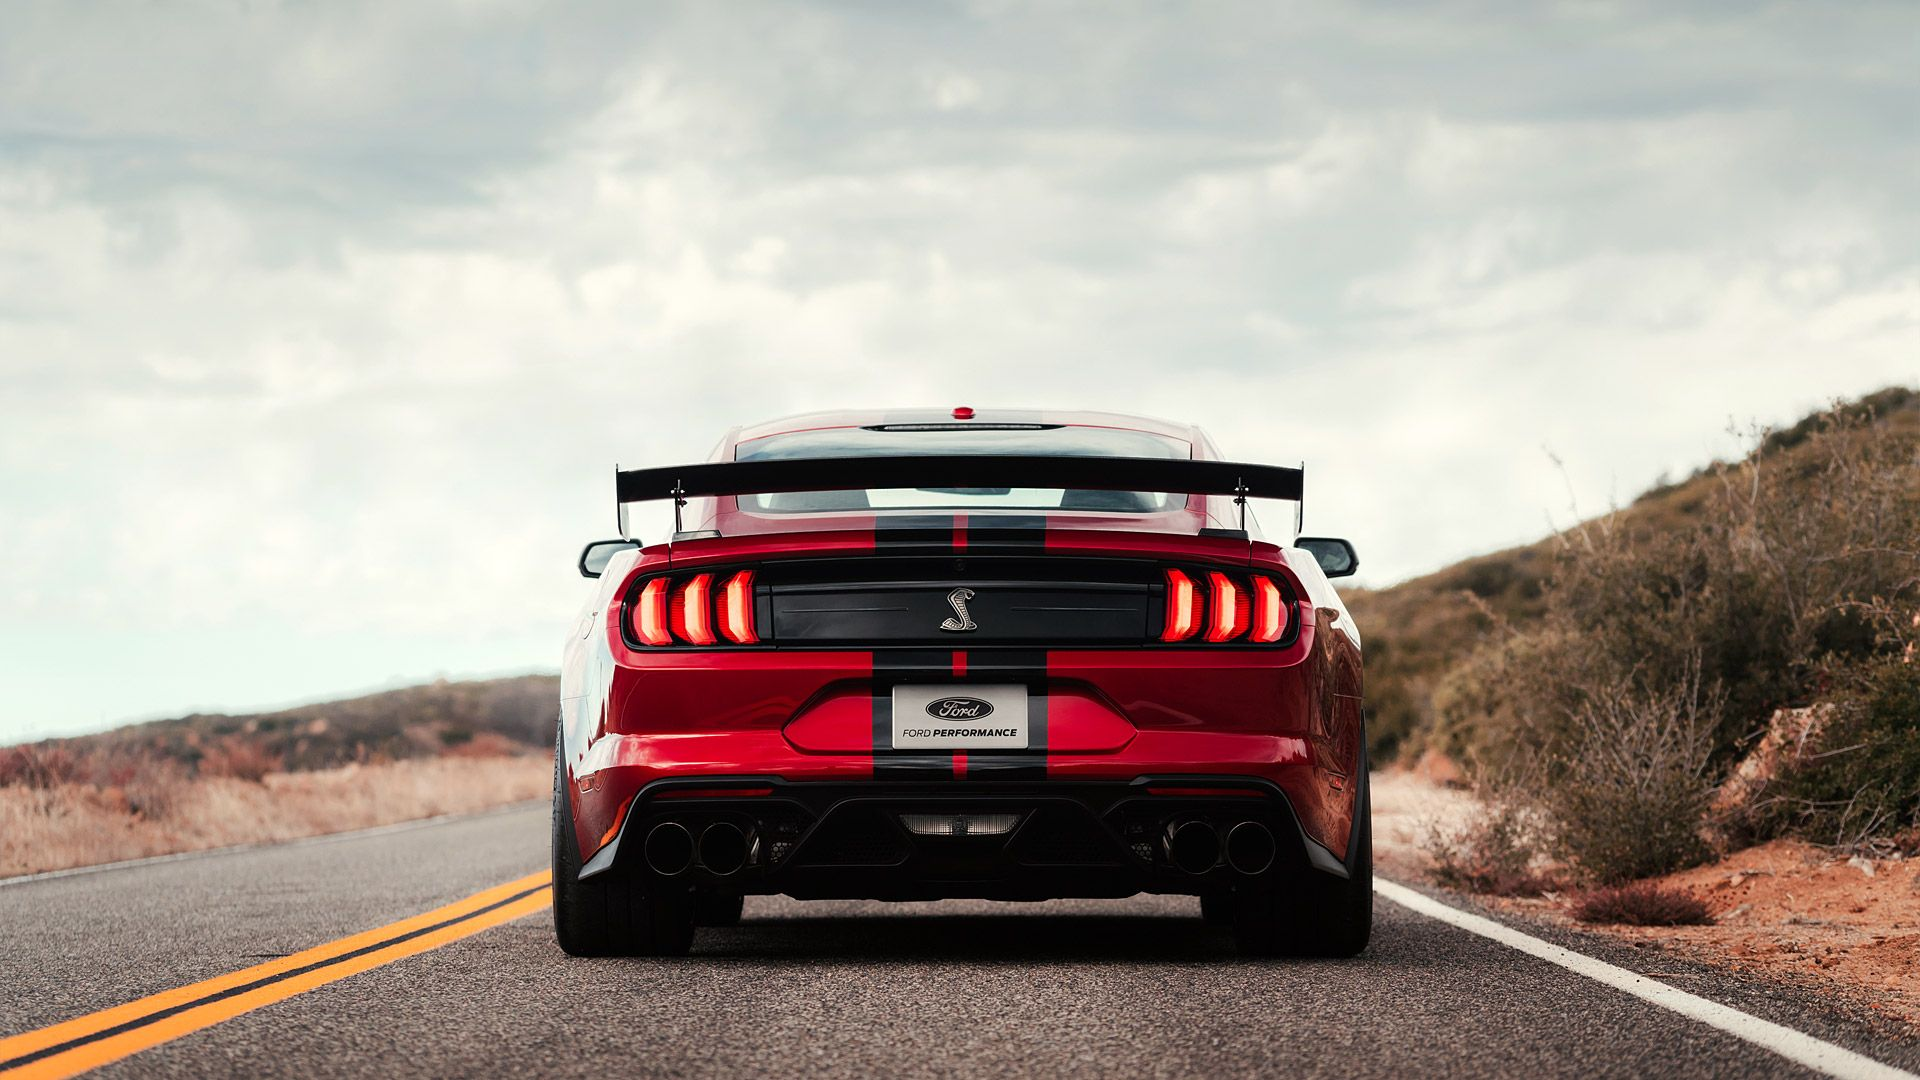 Ford Mustang Shelby Gt500 Wallpapers Top Free Ford Mustang